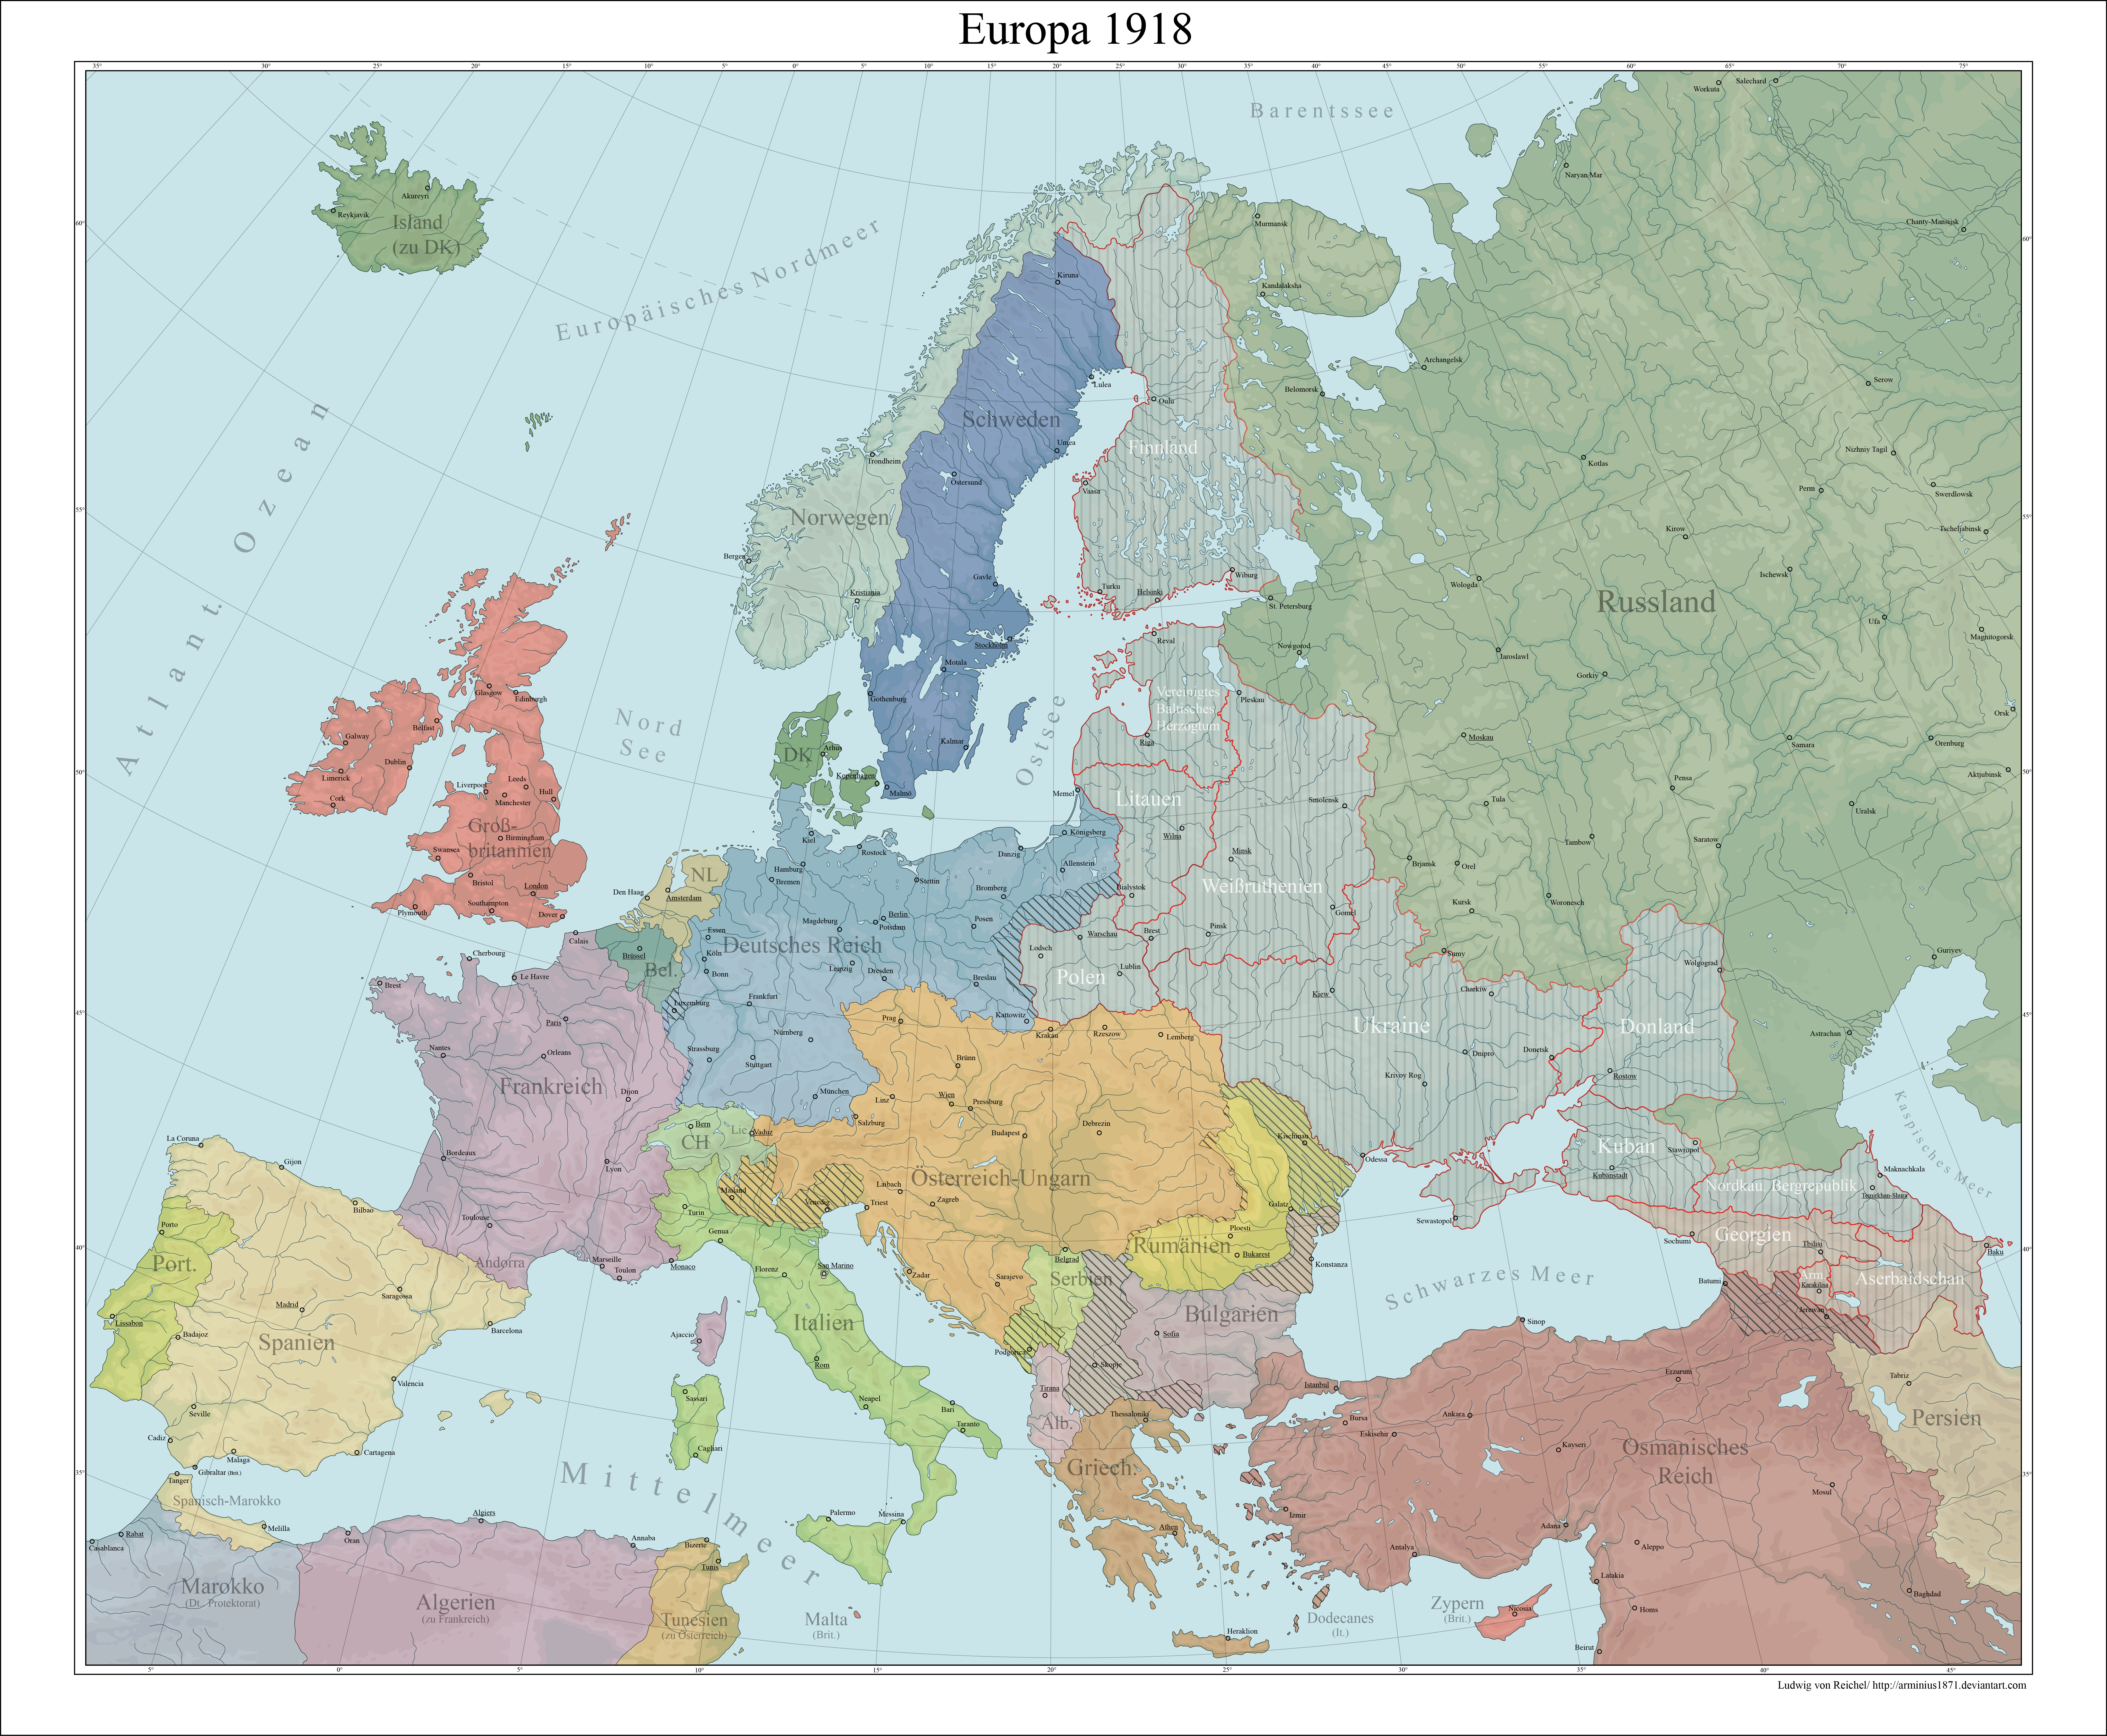 Europe 1918 Central Power victory by Arminius1871